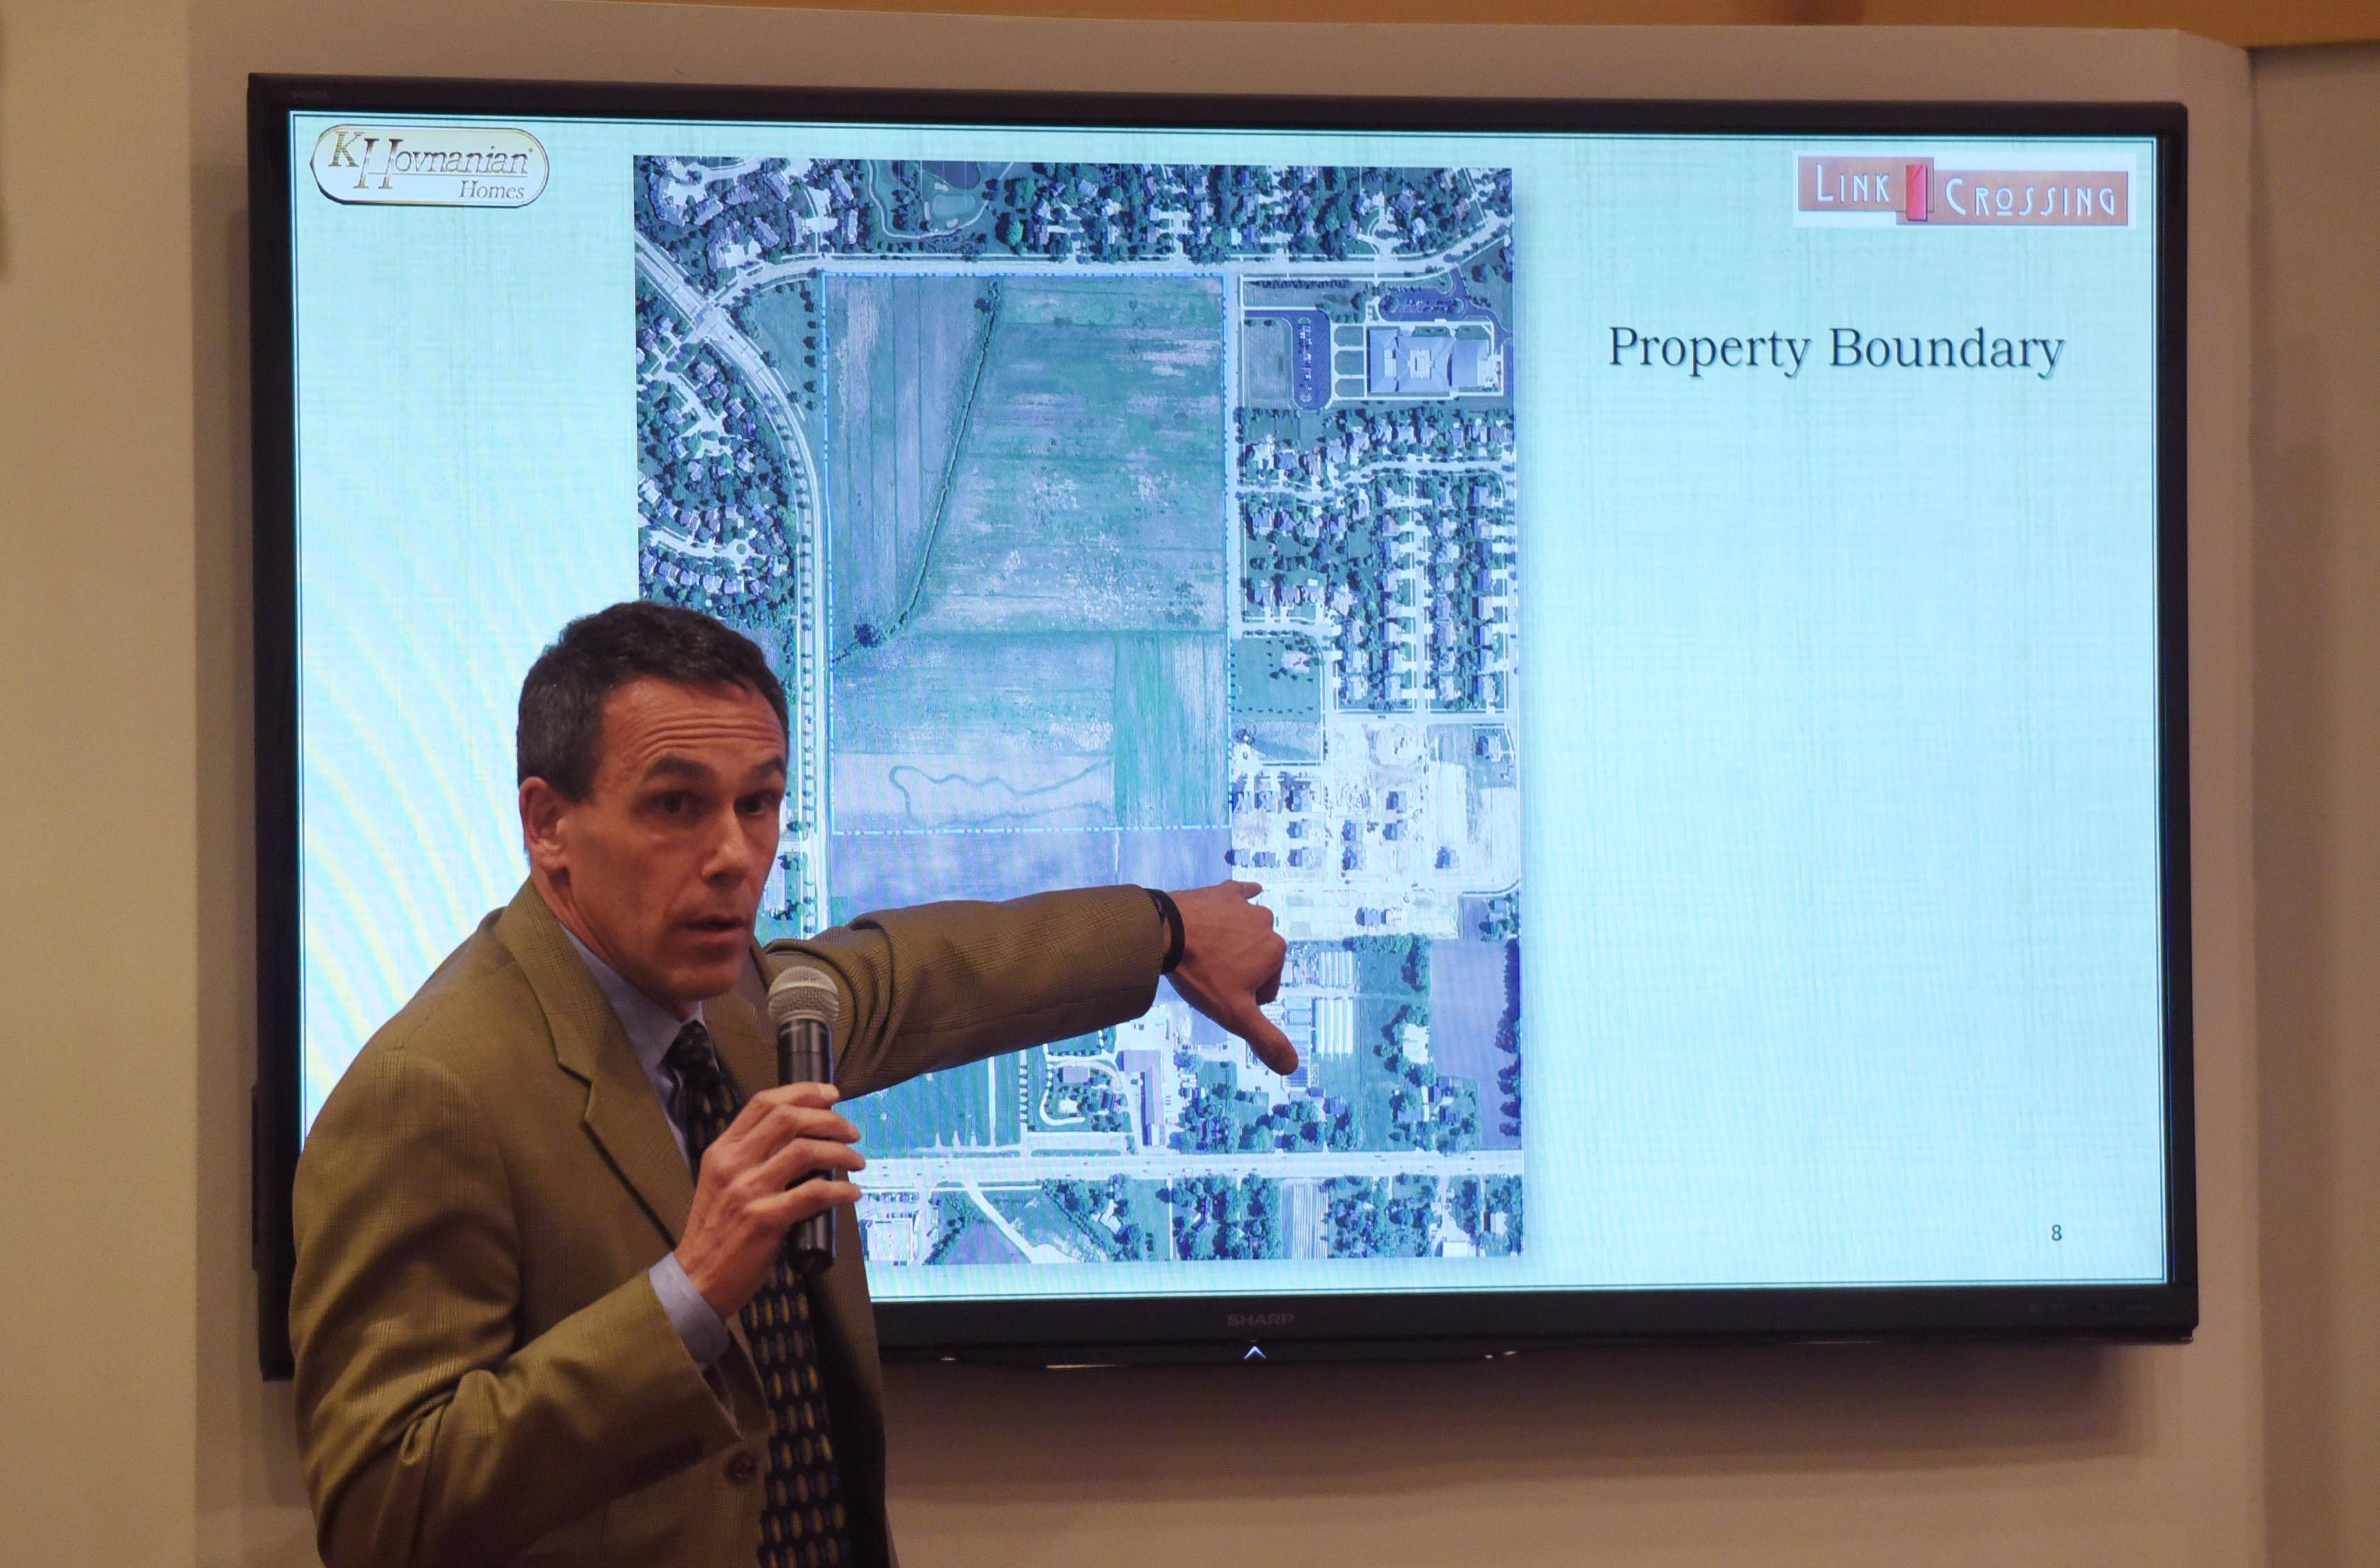 Mark Kurensky, principal of HKM Architects and Planning Inc., speaks about the proposed Links Crossing development during an April 12 meeting in Buffalo Grove.